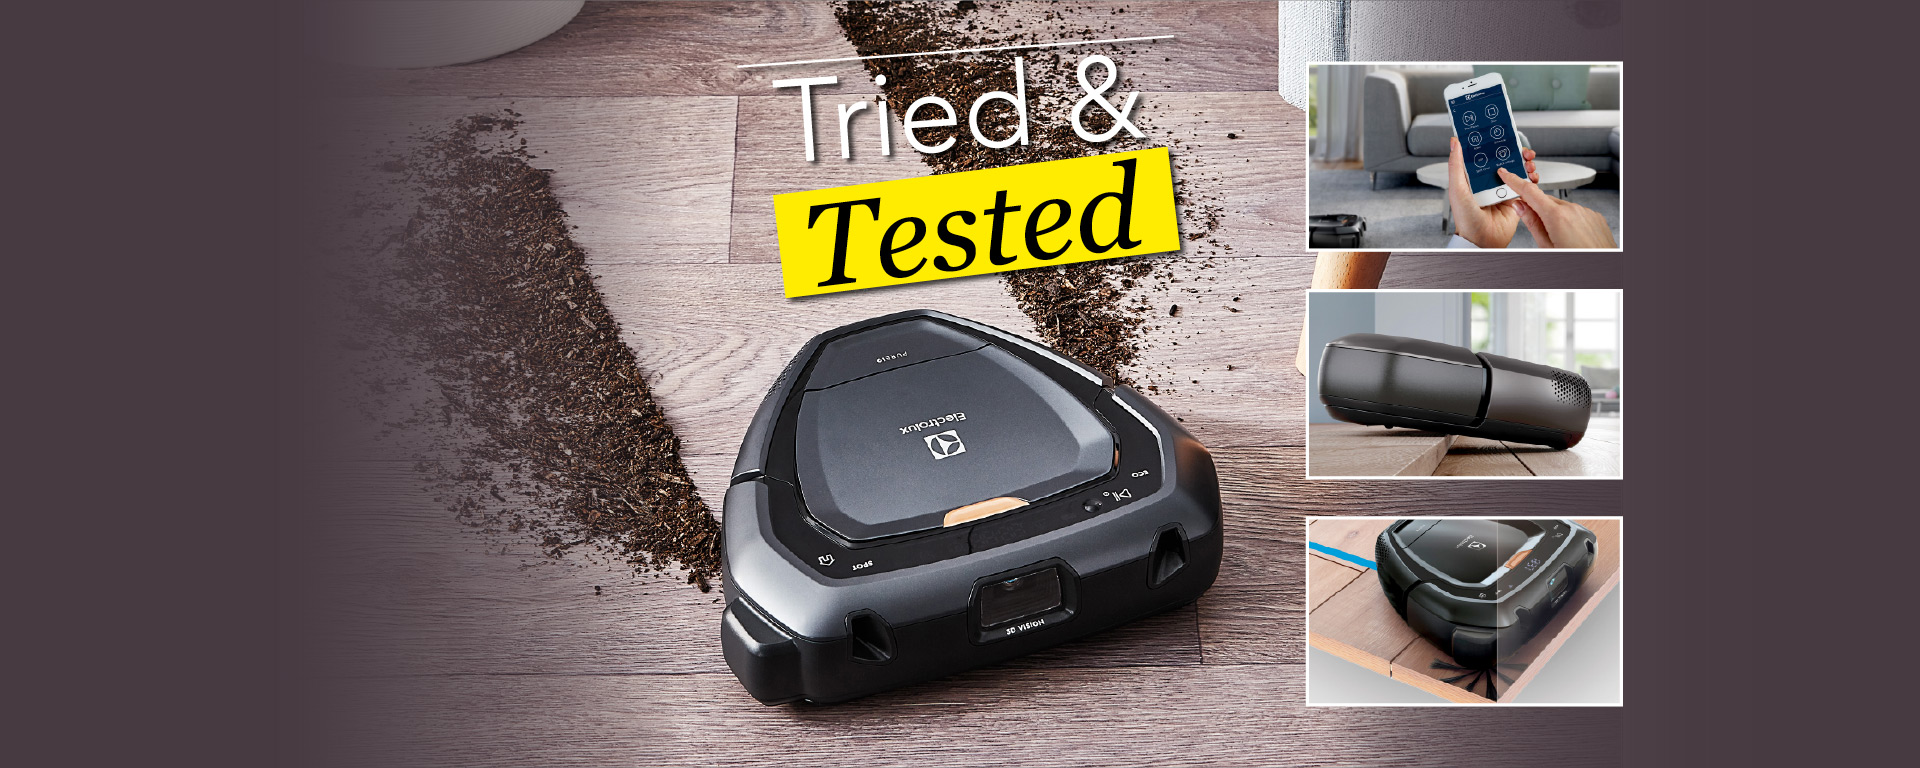 electrolux-robot-tried-and-tested